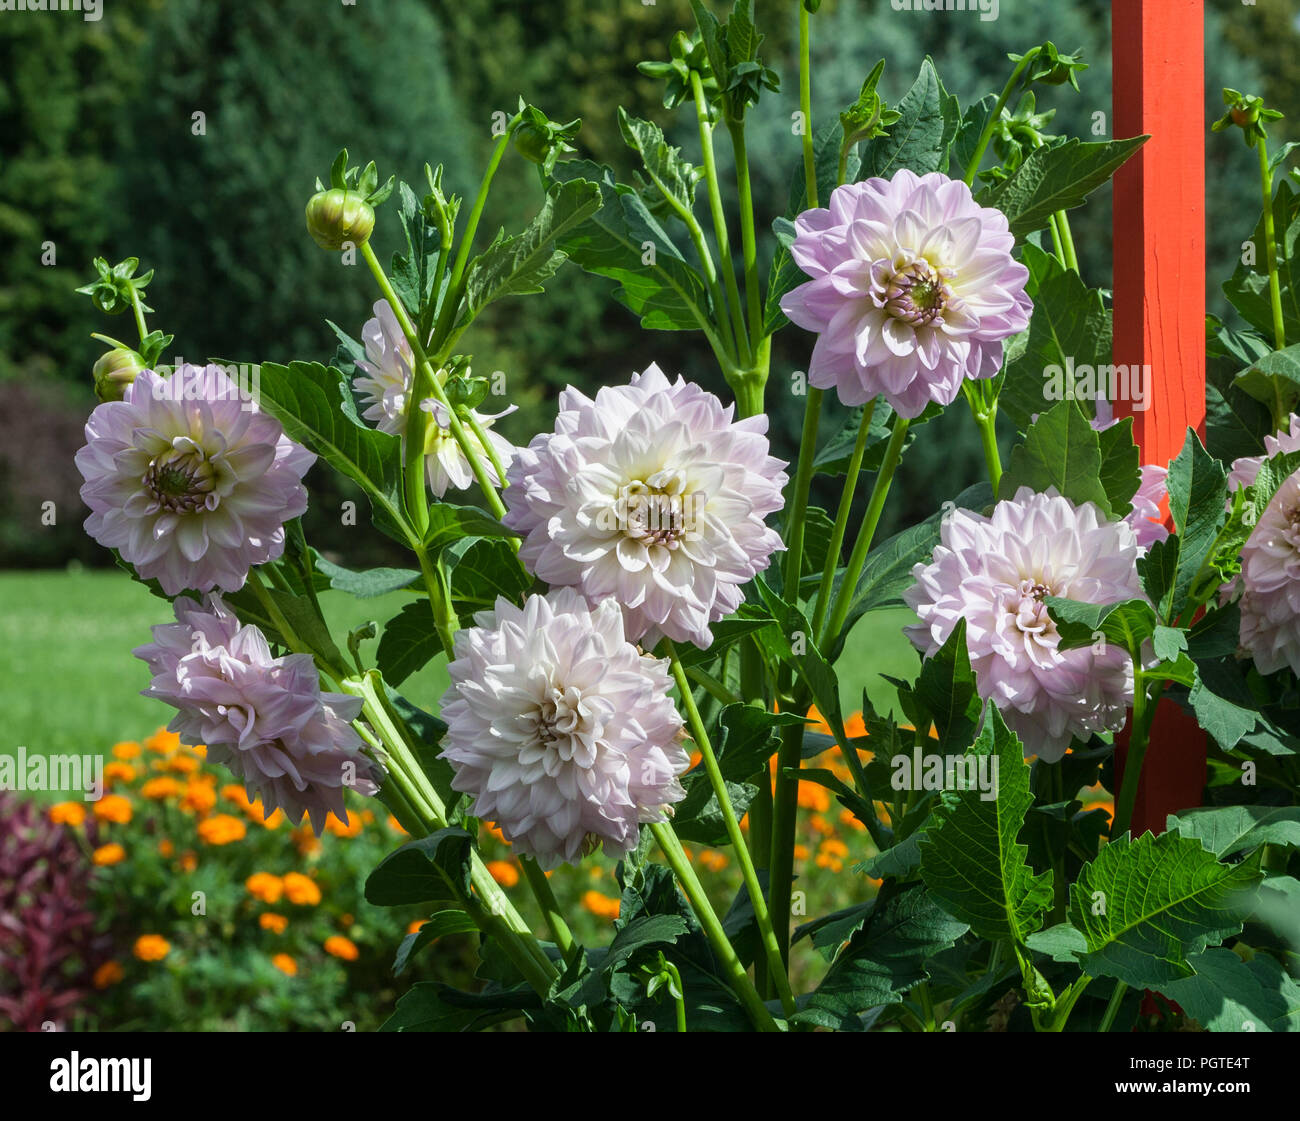 White aster flowers buds on stock photos white aster flowers buds asteraceae dahlia cultorum grade evalds valters white and purple delicate flowers aster flowers in bloom and mightylinksfo